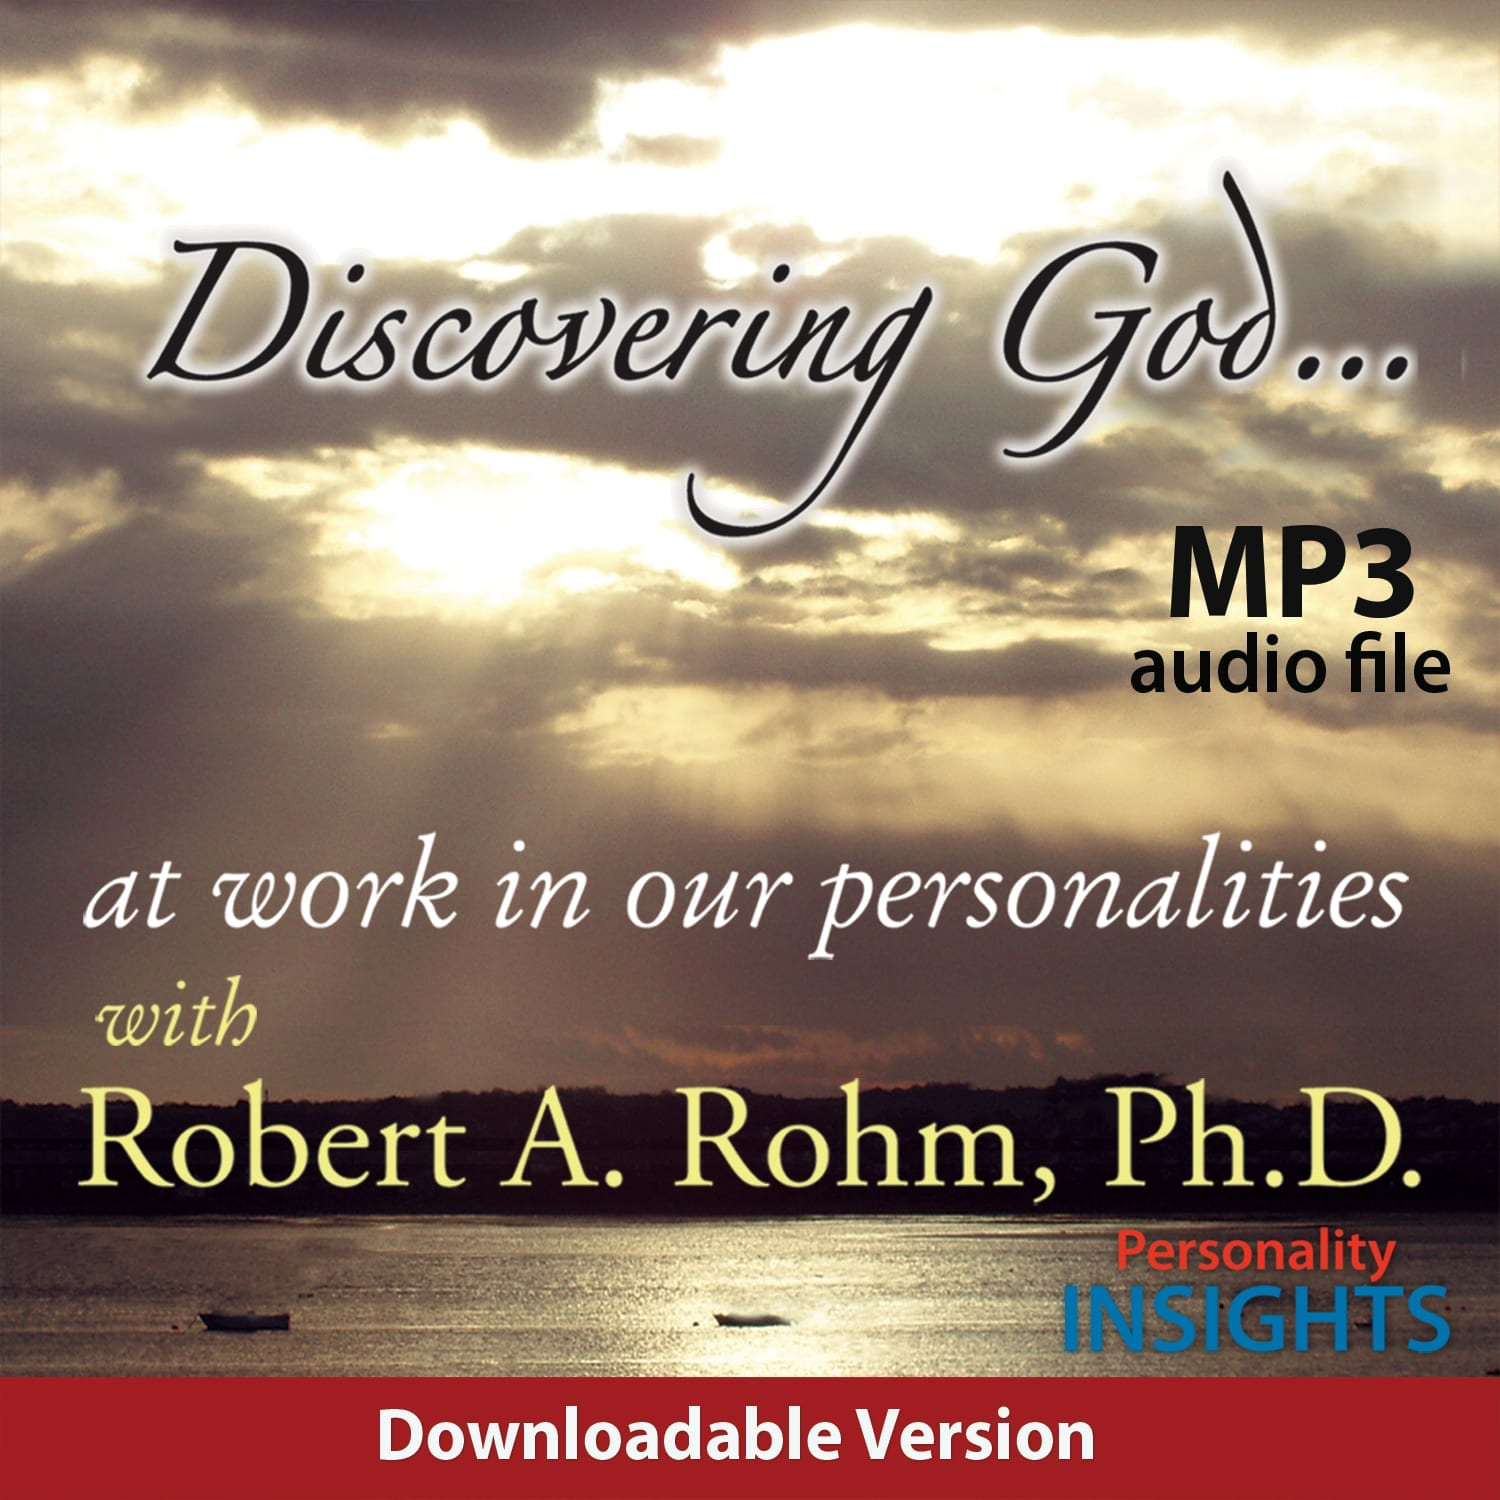 Discovering GOD – Downloadable MP3 Audio Version